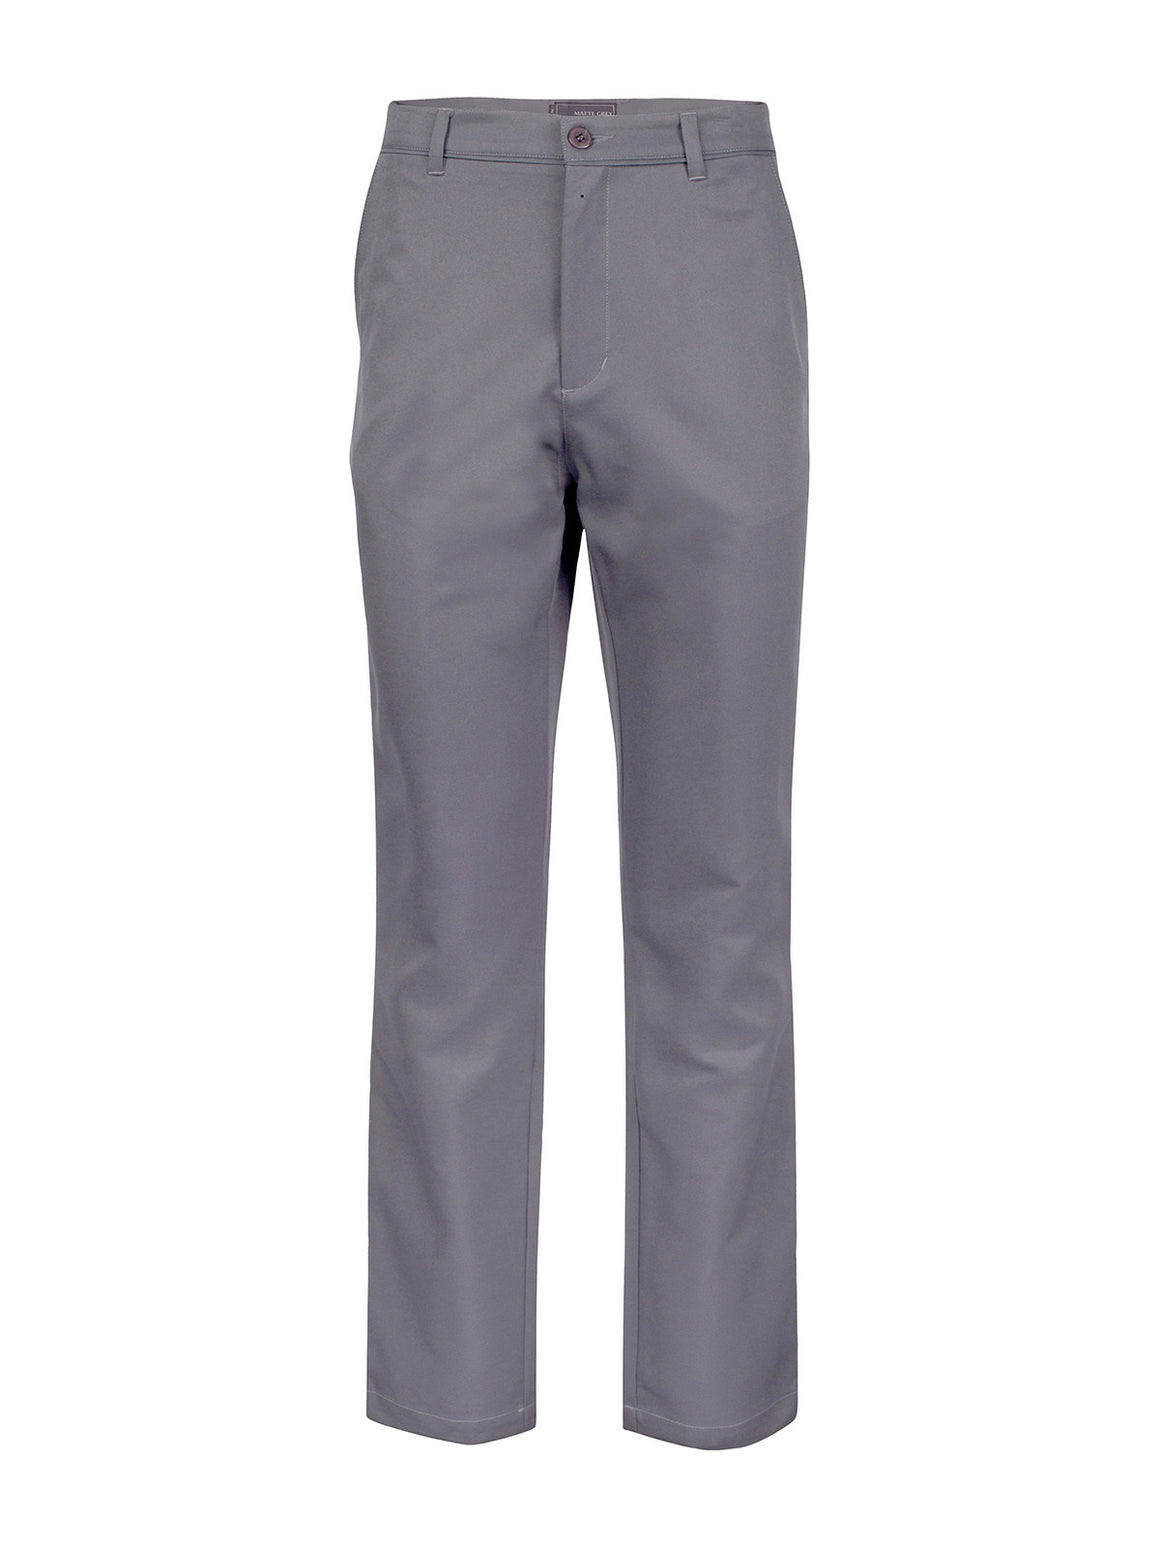 Wayfarer FIT101 Pant - Steel